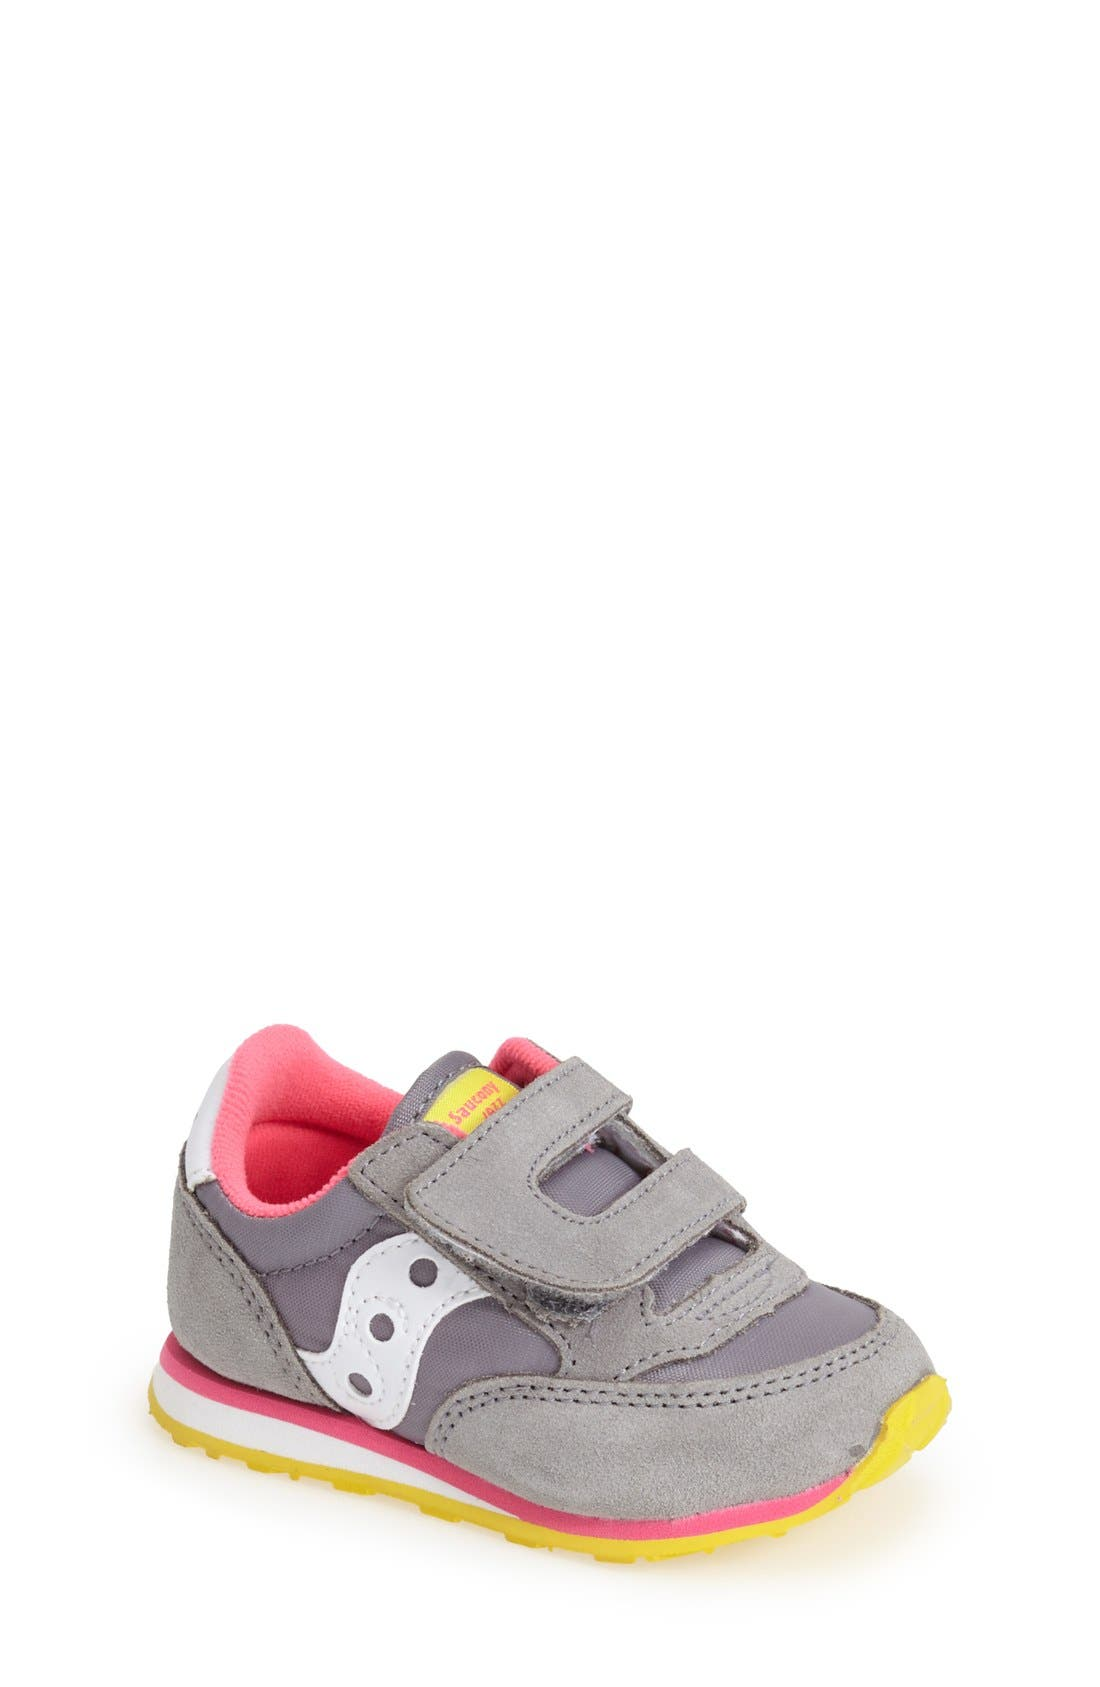 Alternate Image 1 Selected - Saucony 'Jazz' Hook & Loop Sneaker (Baby, Walker & Toddler)